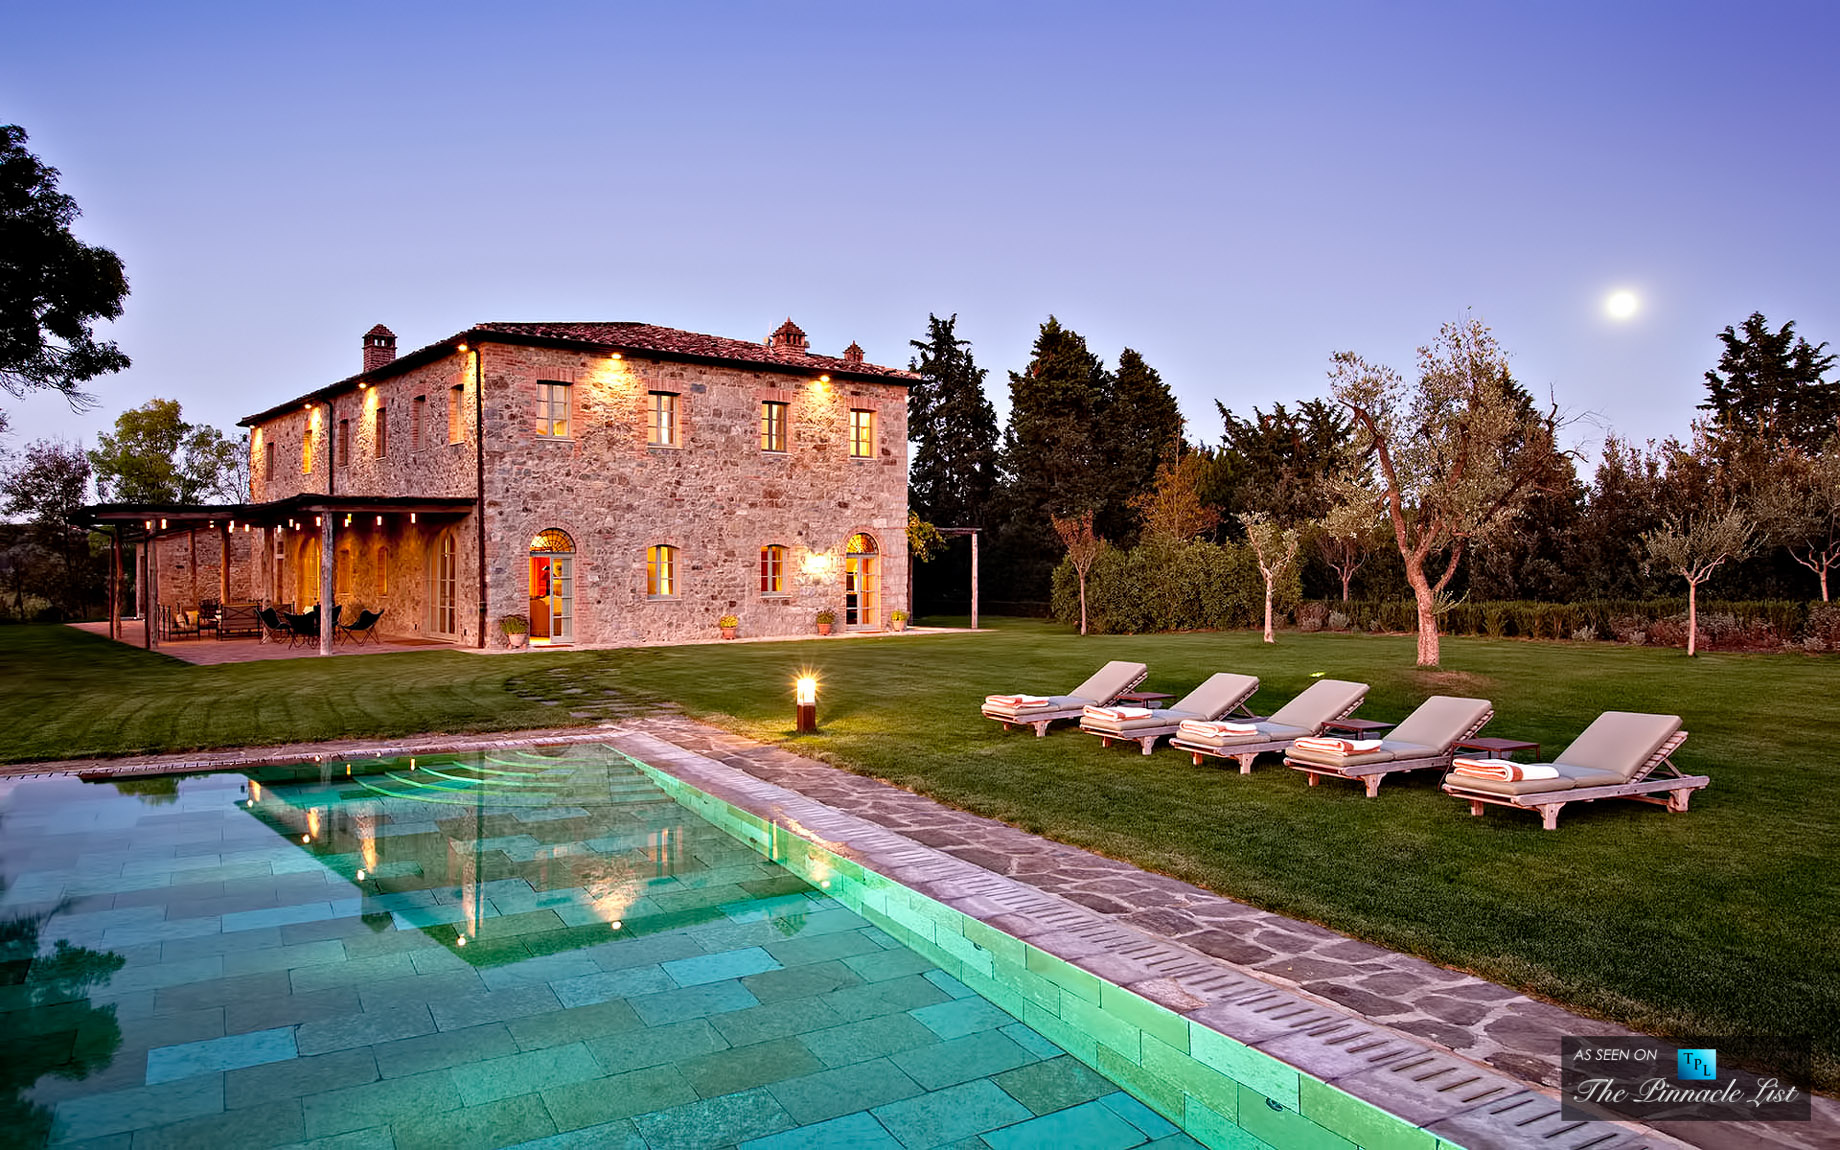 Casa Biondi – Tuscany, Italy – The 5 Best Rural Villas in the Mediterranean for Luxury Retreats